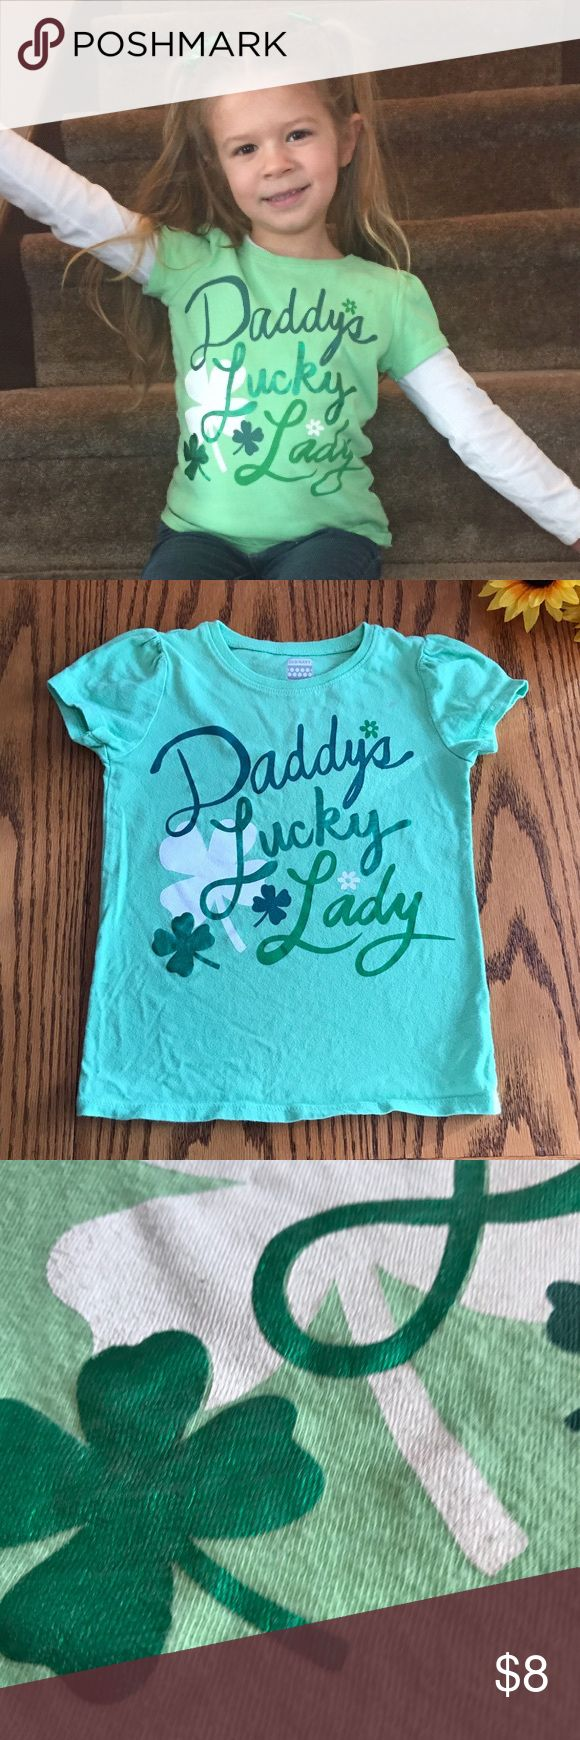 Old Navy 'Daddy's Lucky Lady' T-shirt . Size 4t Old Navy 'Daddy's Lucky Lady' T-shirt . Size 4t. Perfect for St. Patrick's Day. Cotton Old Navy Shirts & Tops Tees - Short Sleeve